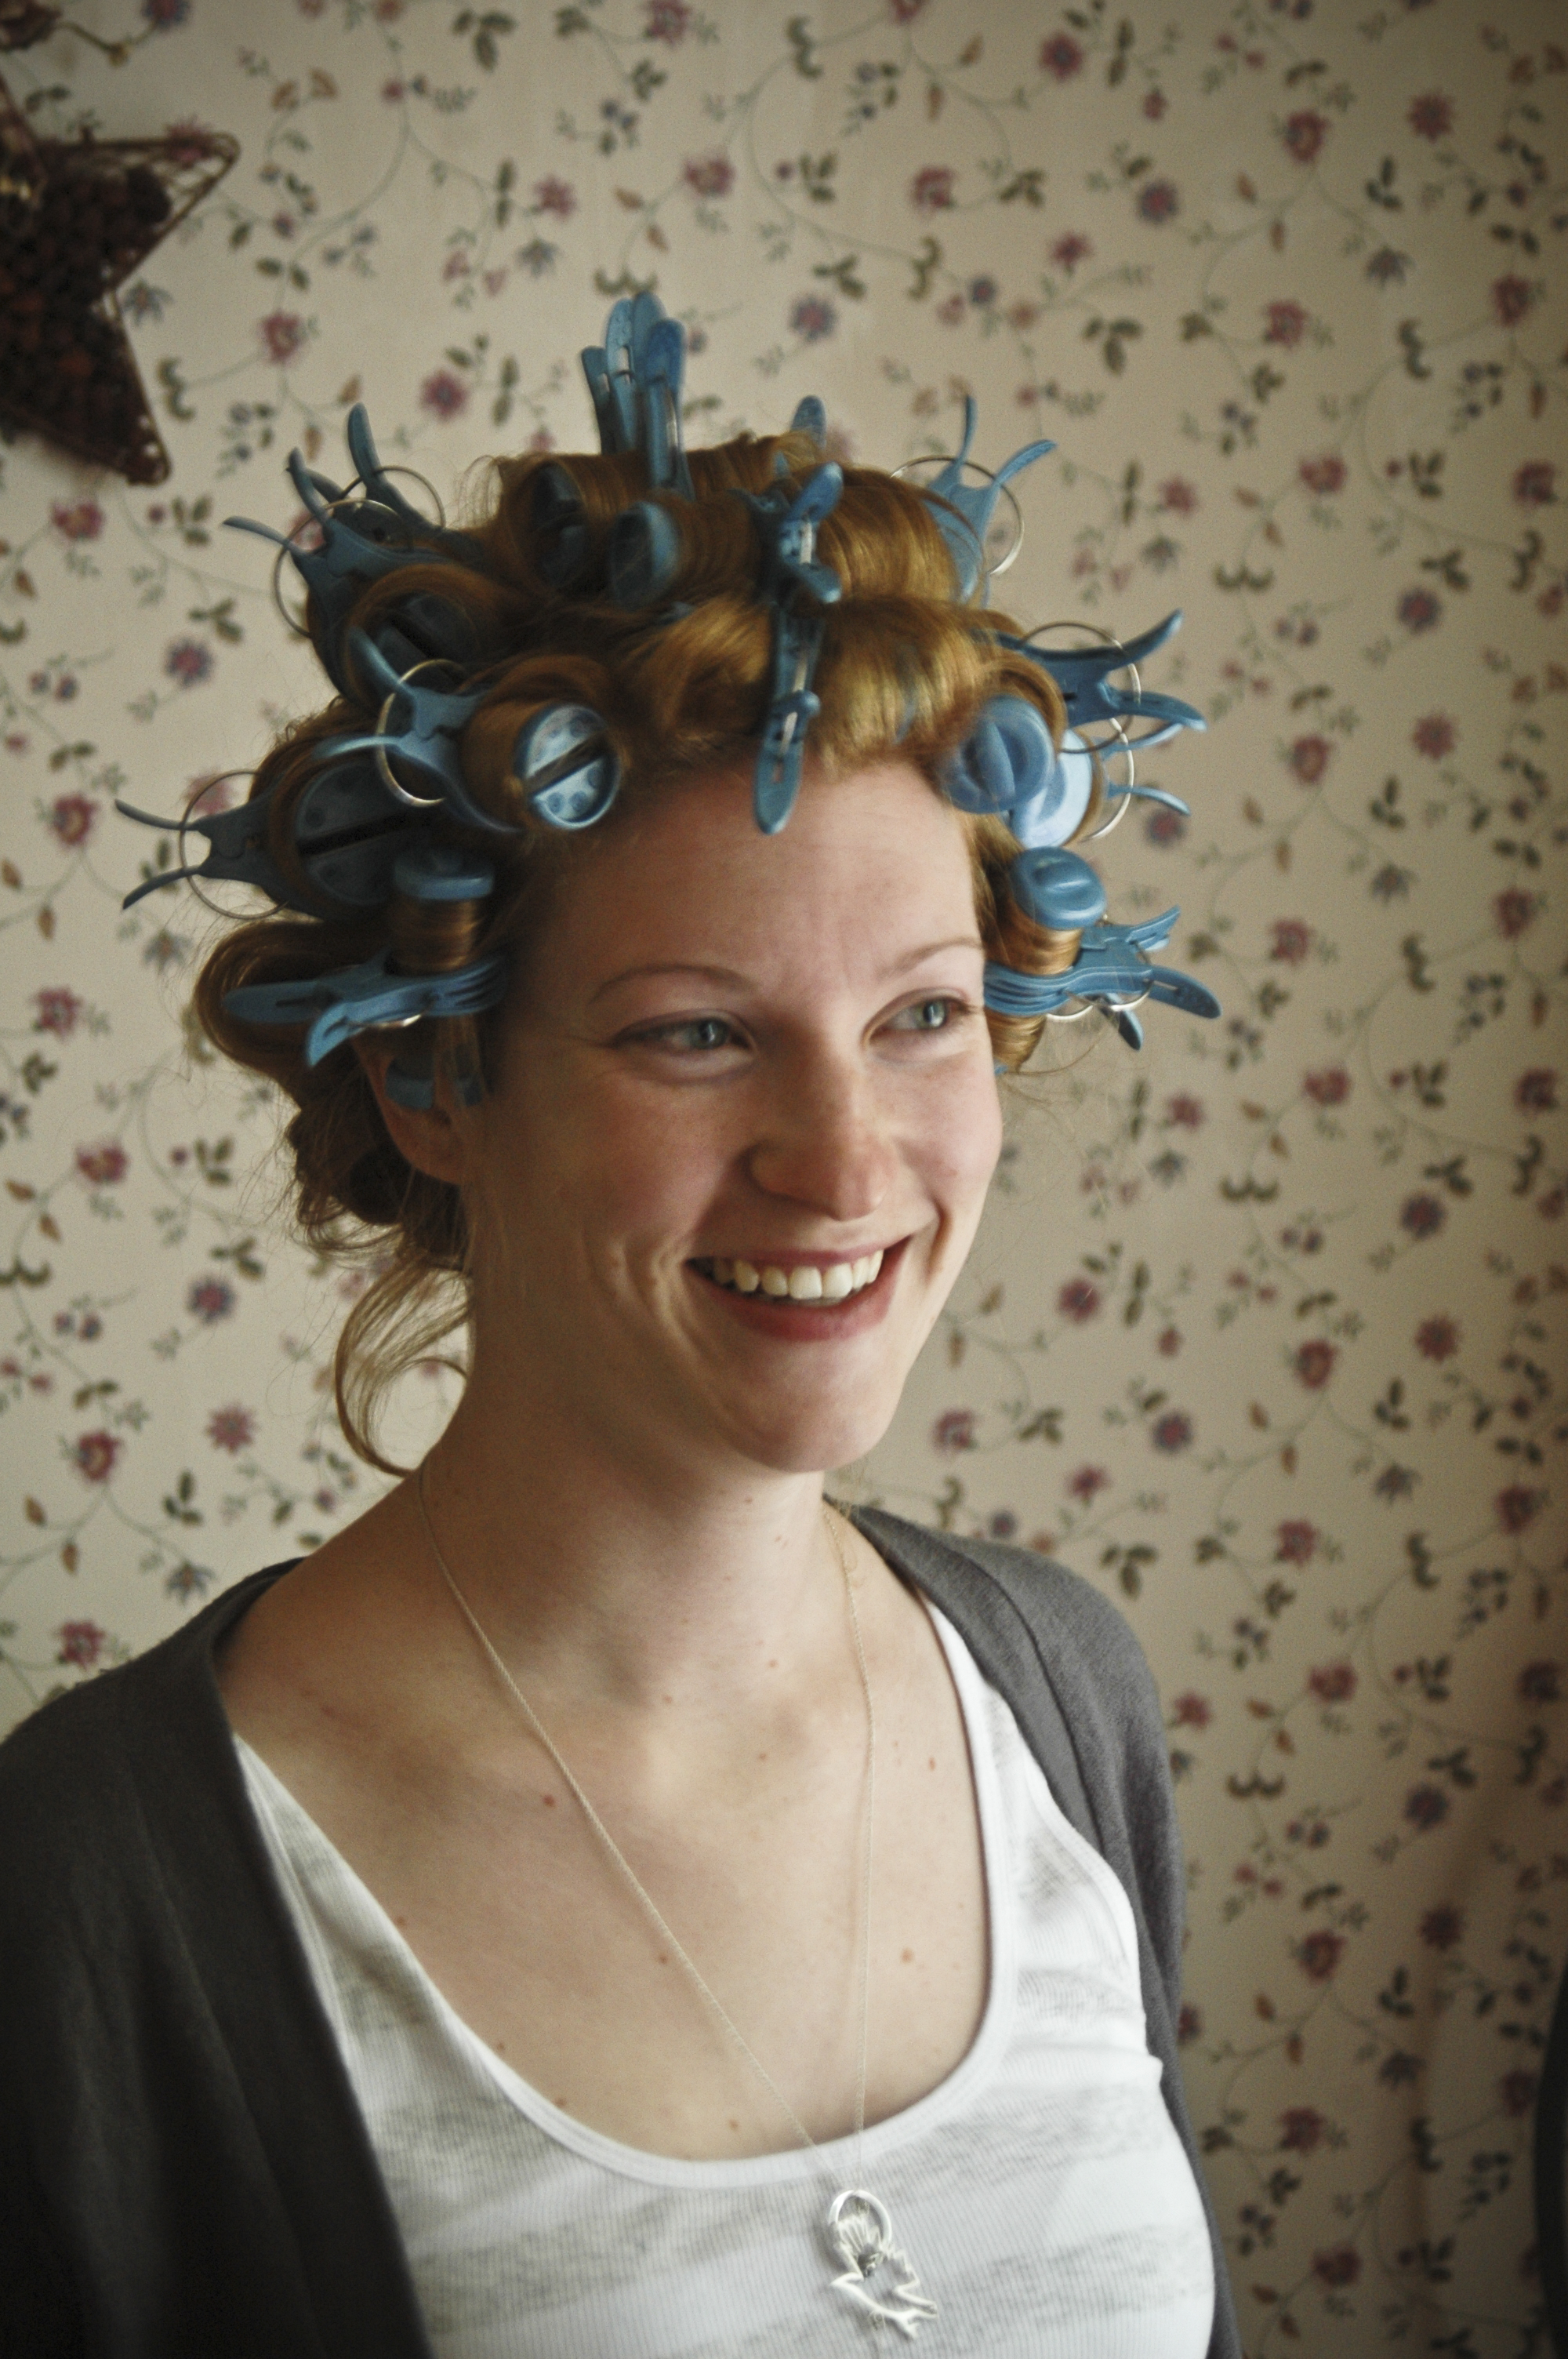 File Curlers Smile Jpg Wikimedia Commons